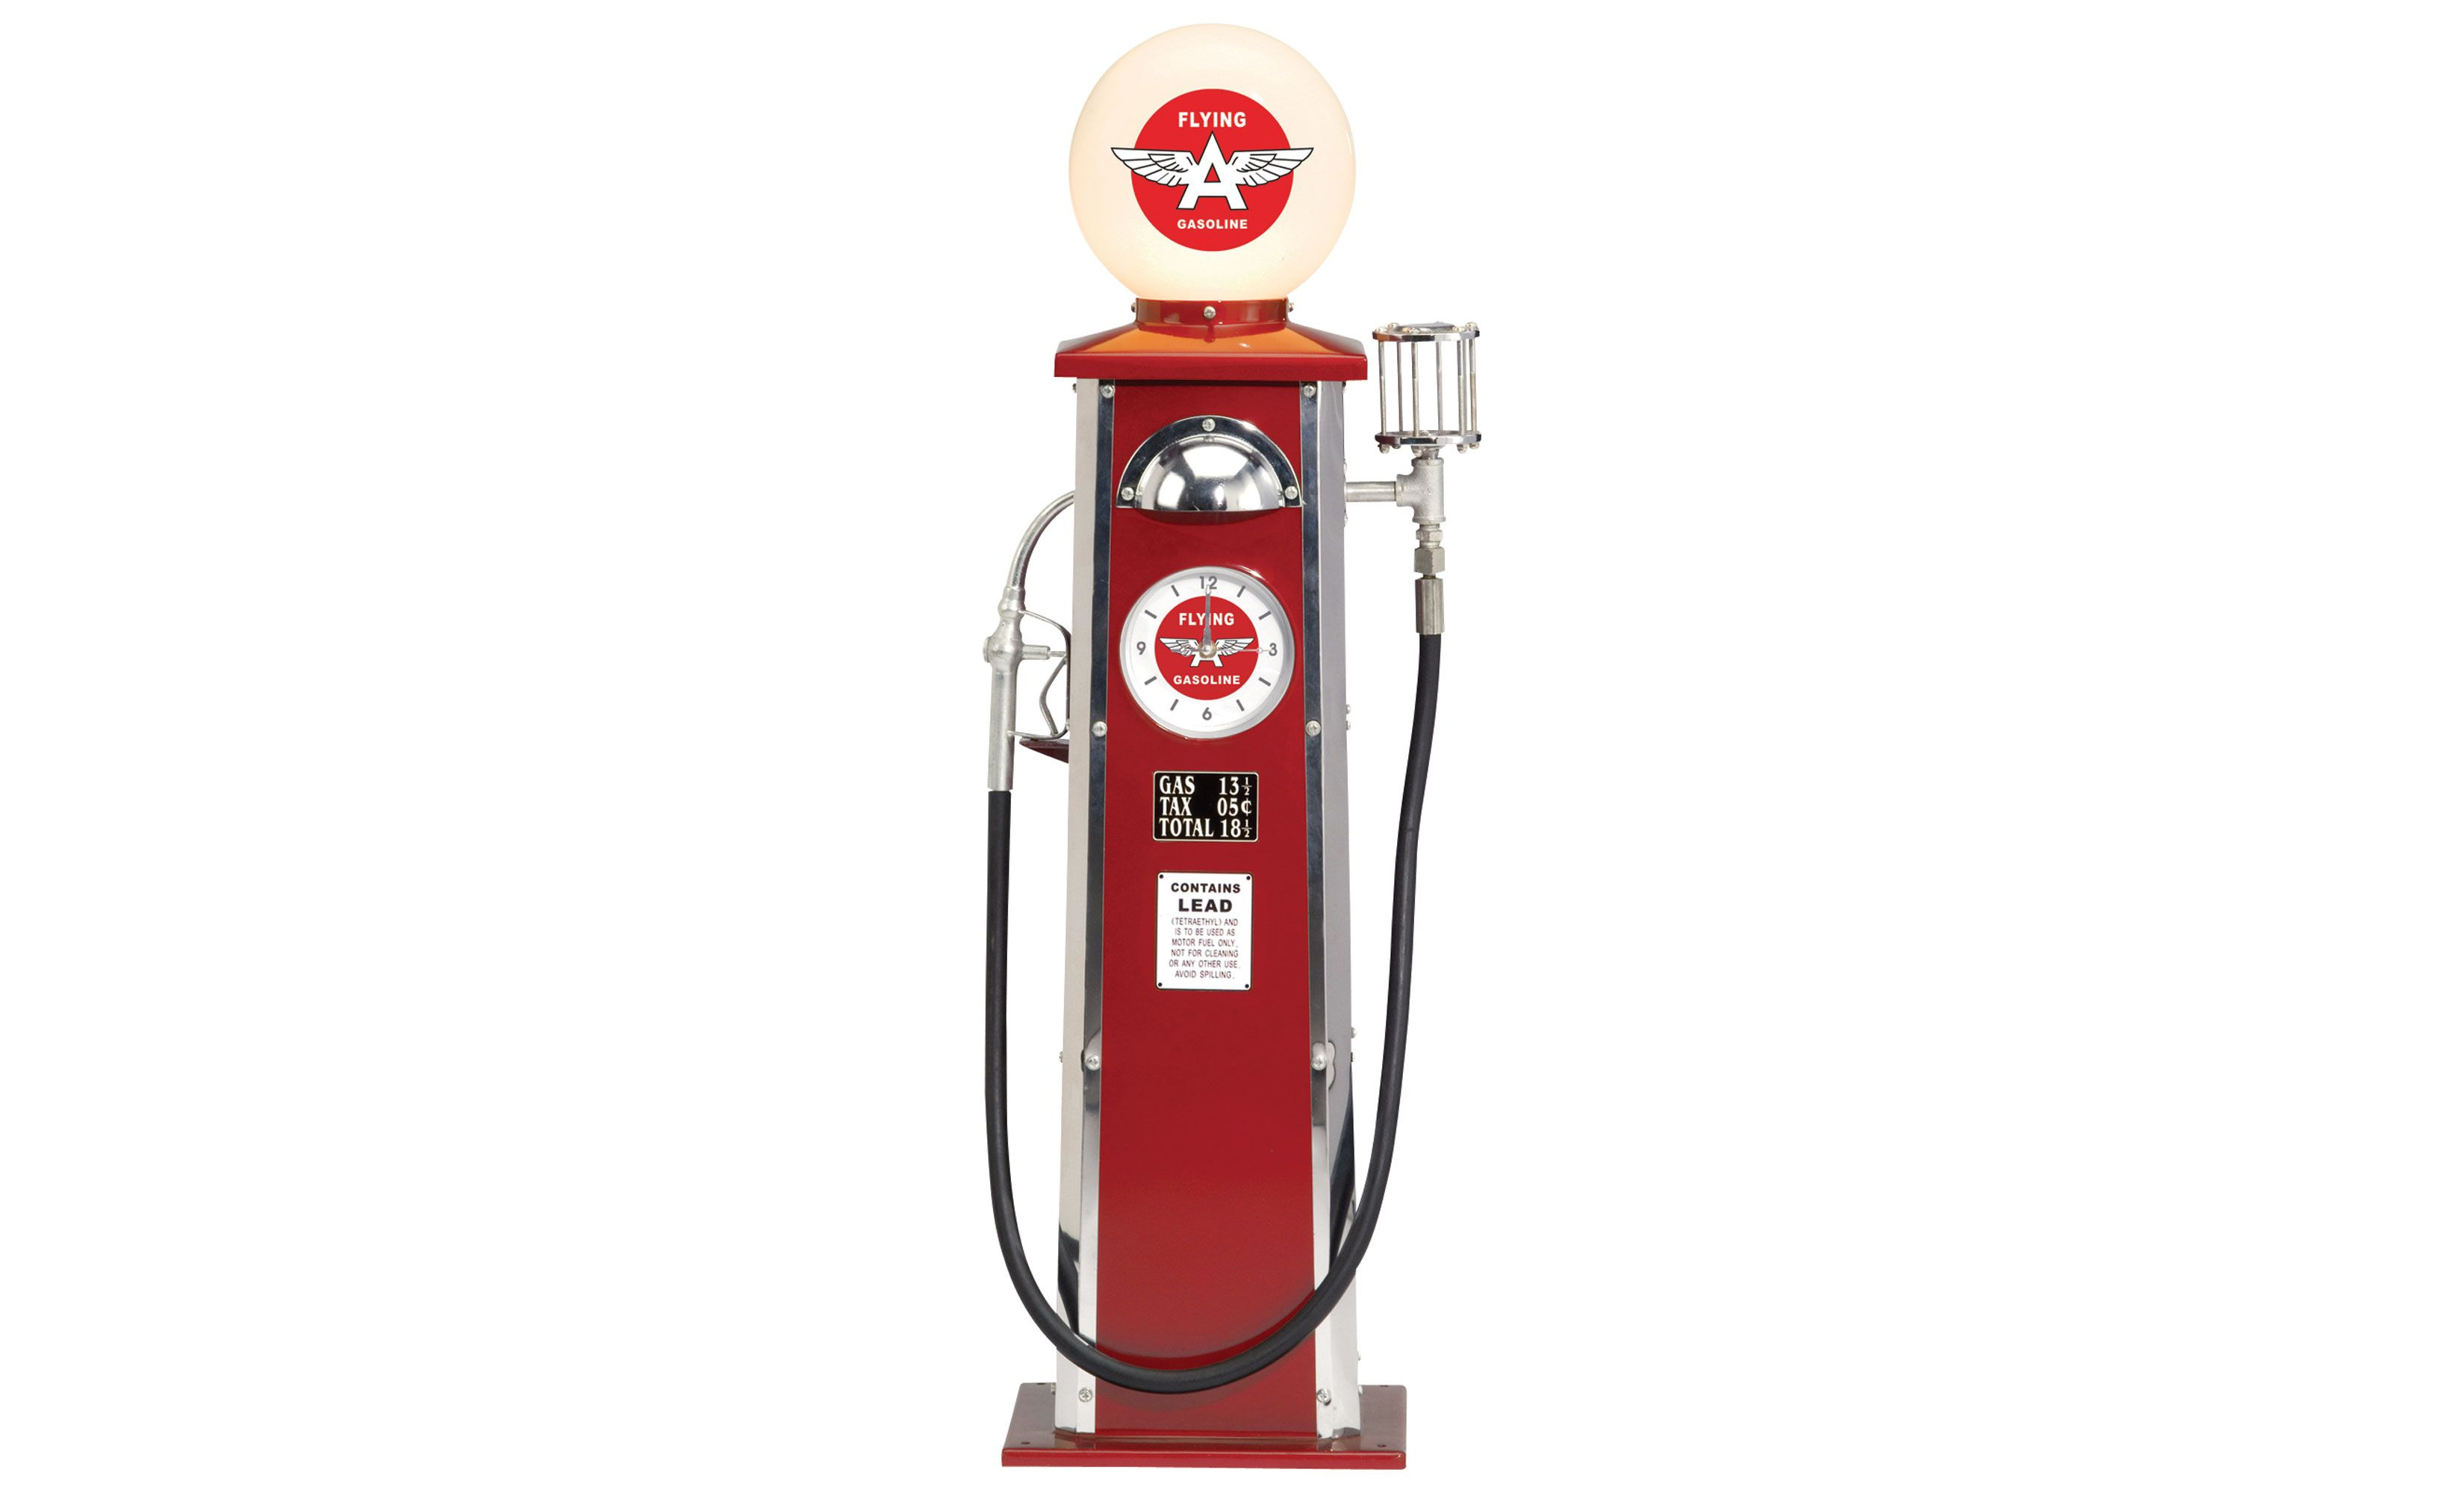 Flying A Old Time Gas Pump 40in H Www Kotulas Com Free Shipping I Would Truly Love To Have This Gas Pumps Gas Lamps For Sale